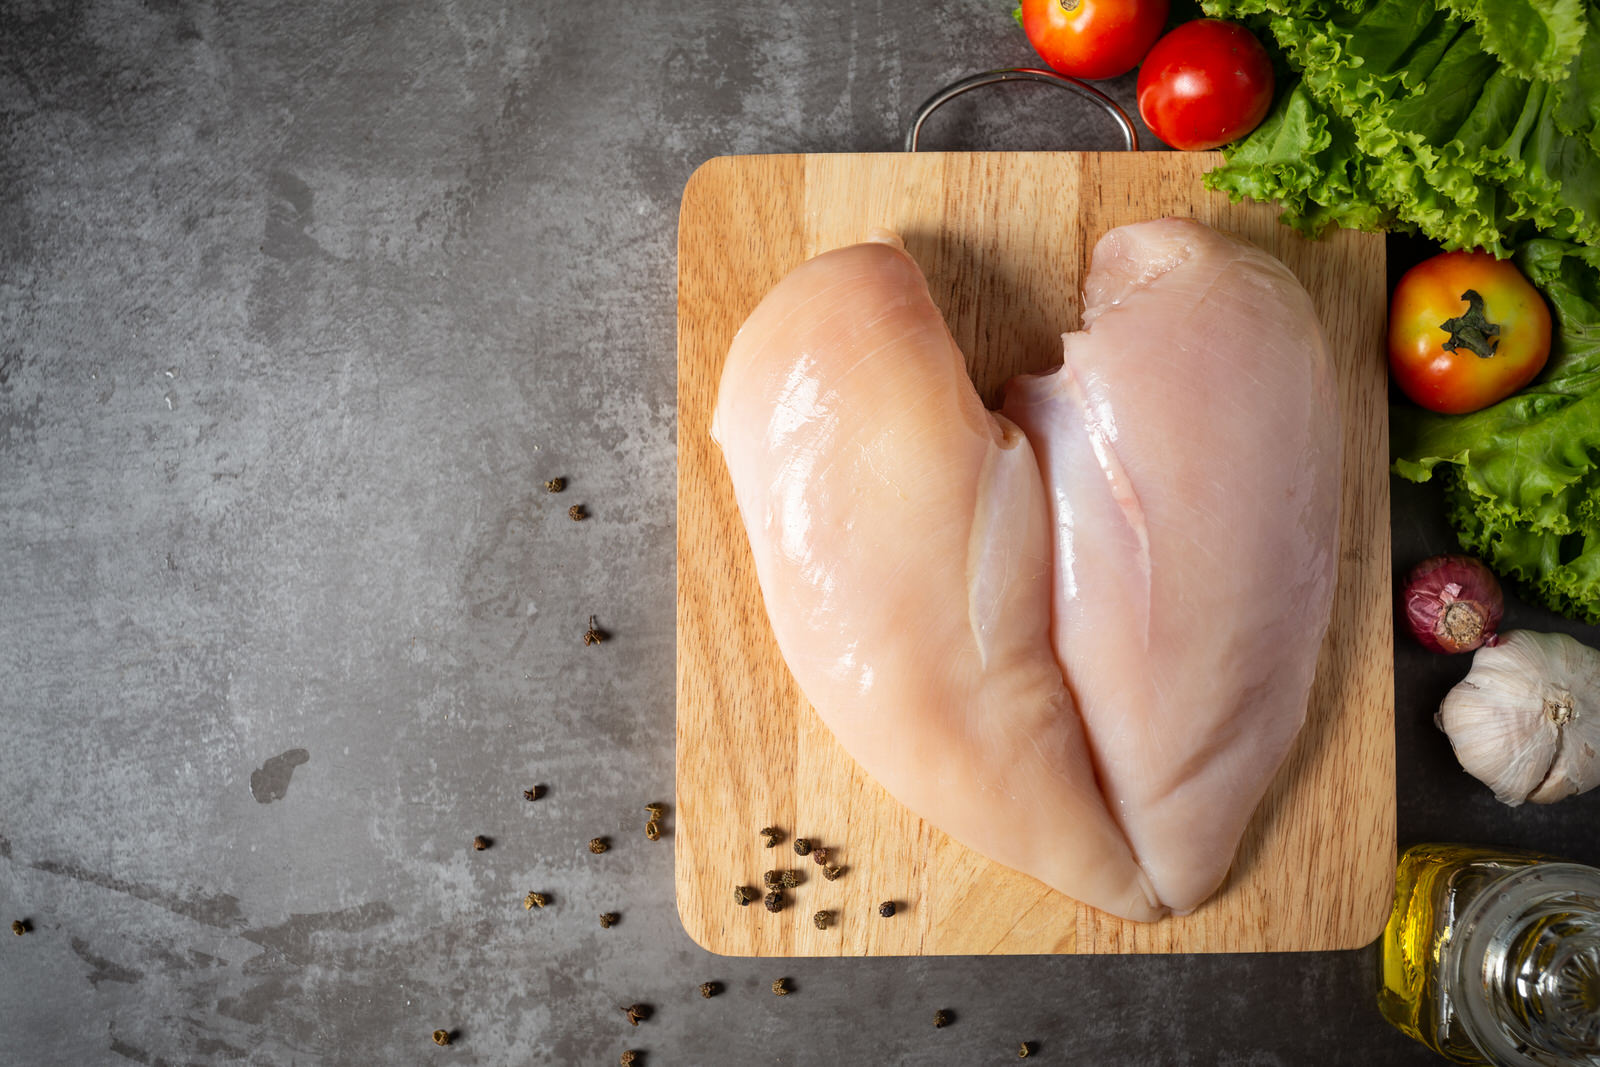 Raw chicken breasts on wooden cutting board.